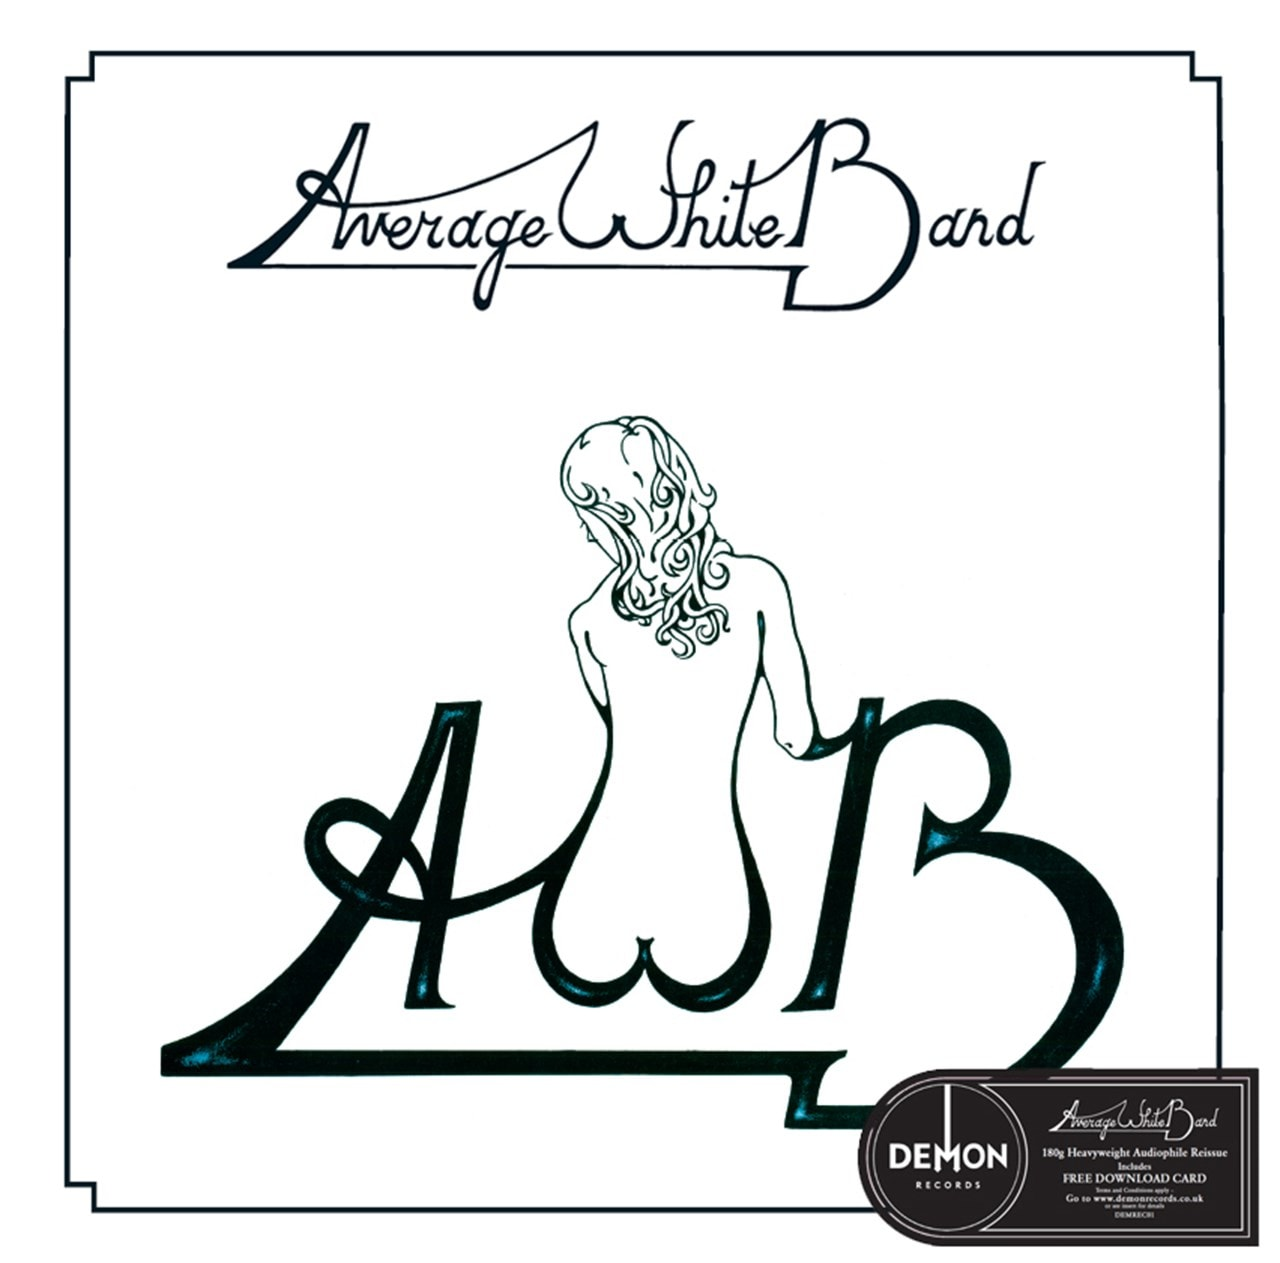 Average White Band - 1